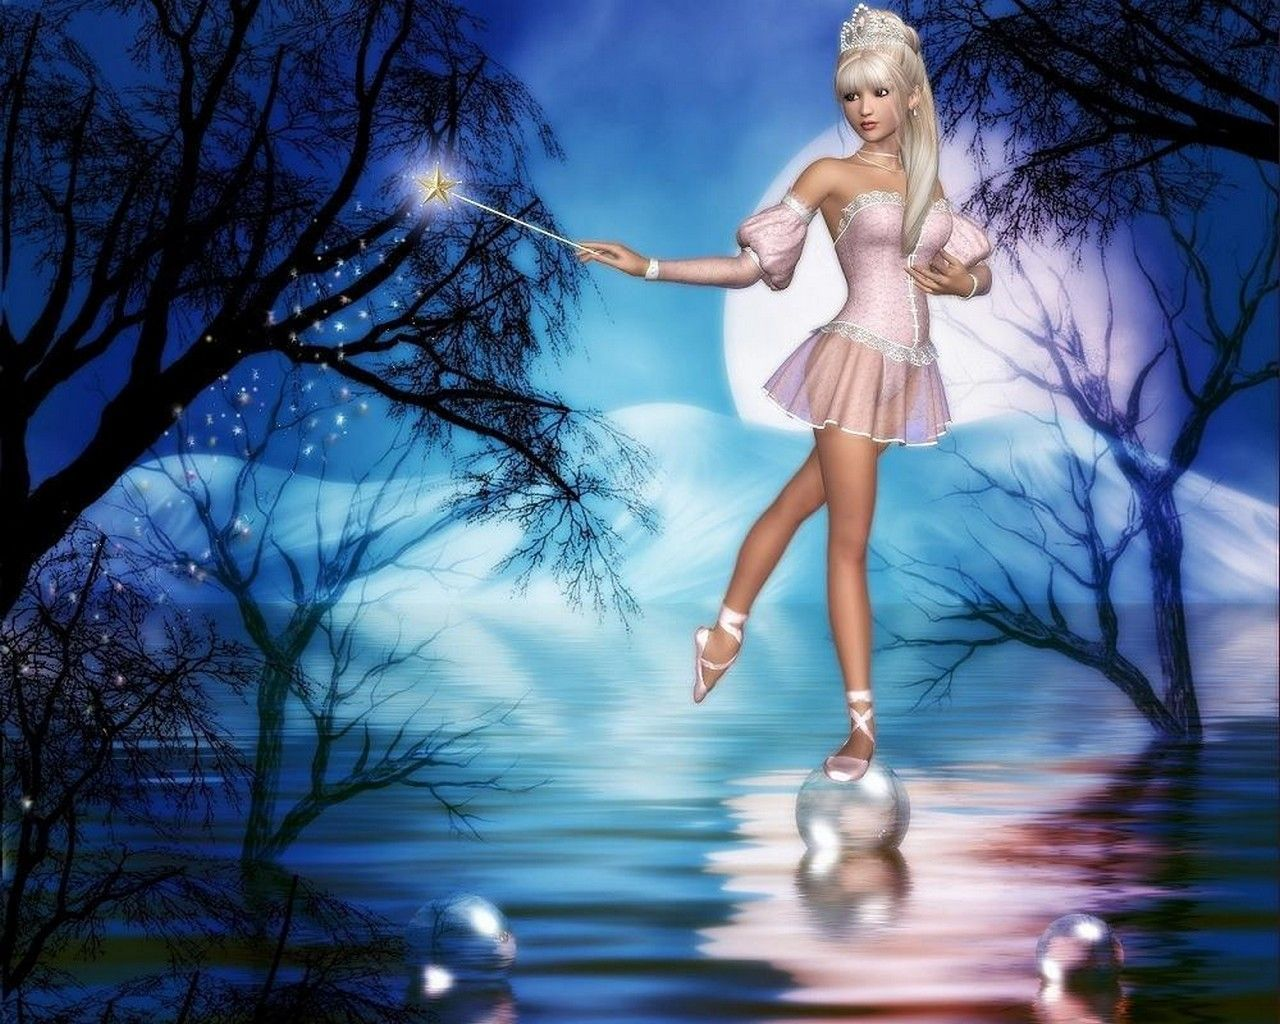 Beautiful fairy wallpapers images wallpapers pinterest fairy beautiful fairy wallpapers altavistaventures Image collections